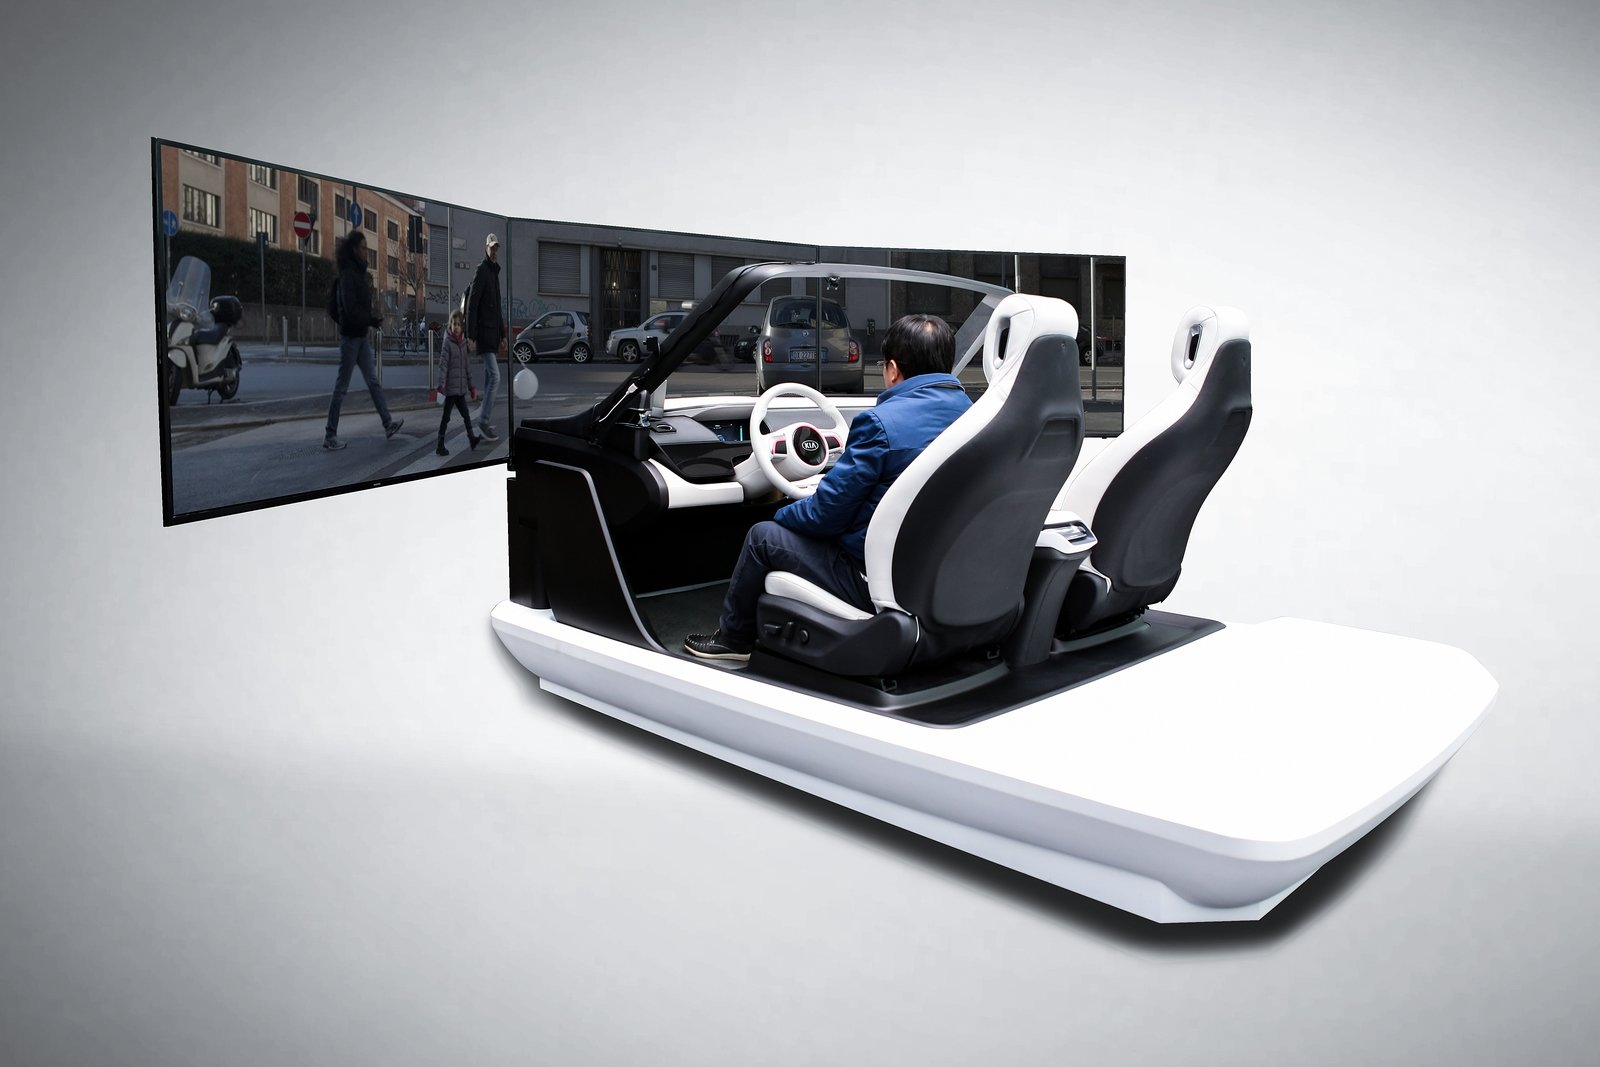 Kia Interactive Cockpit At Ces Shows Off Suite Of New